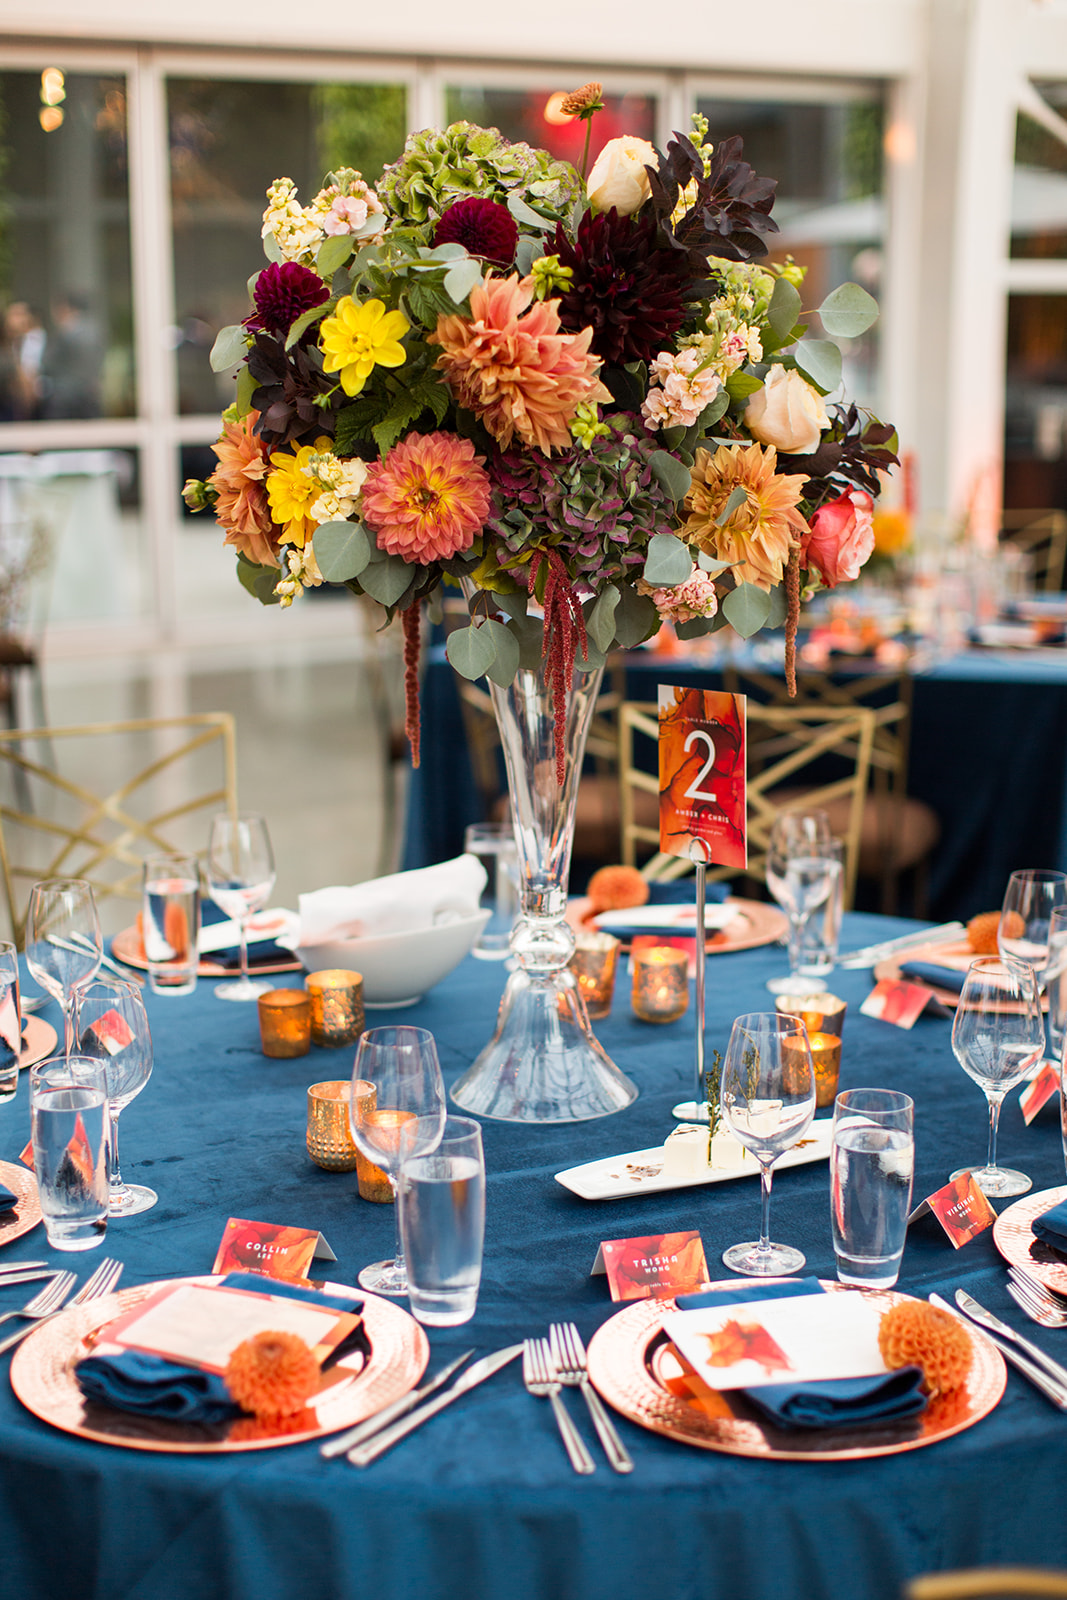 Elevated wedding centerpieces with fall flowers in oranges, Burgundy and yellow colors on navy velvet linens in the Chihuly glasshouse | Flora Nova Design Seattle